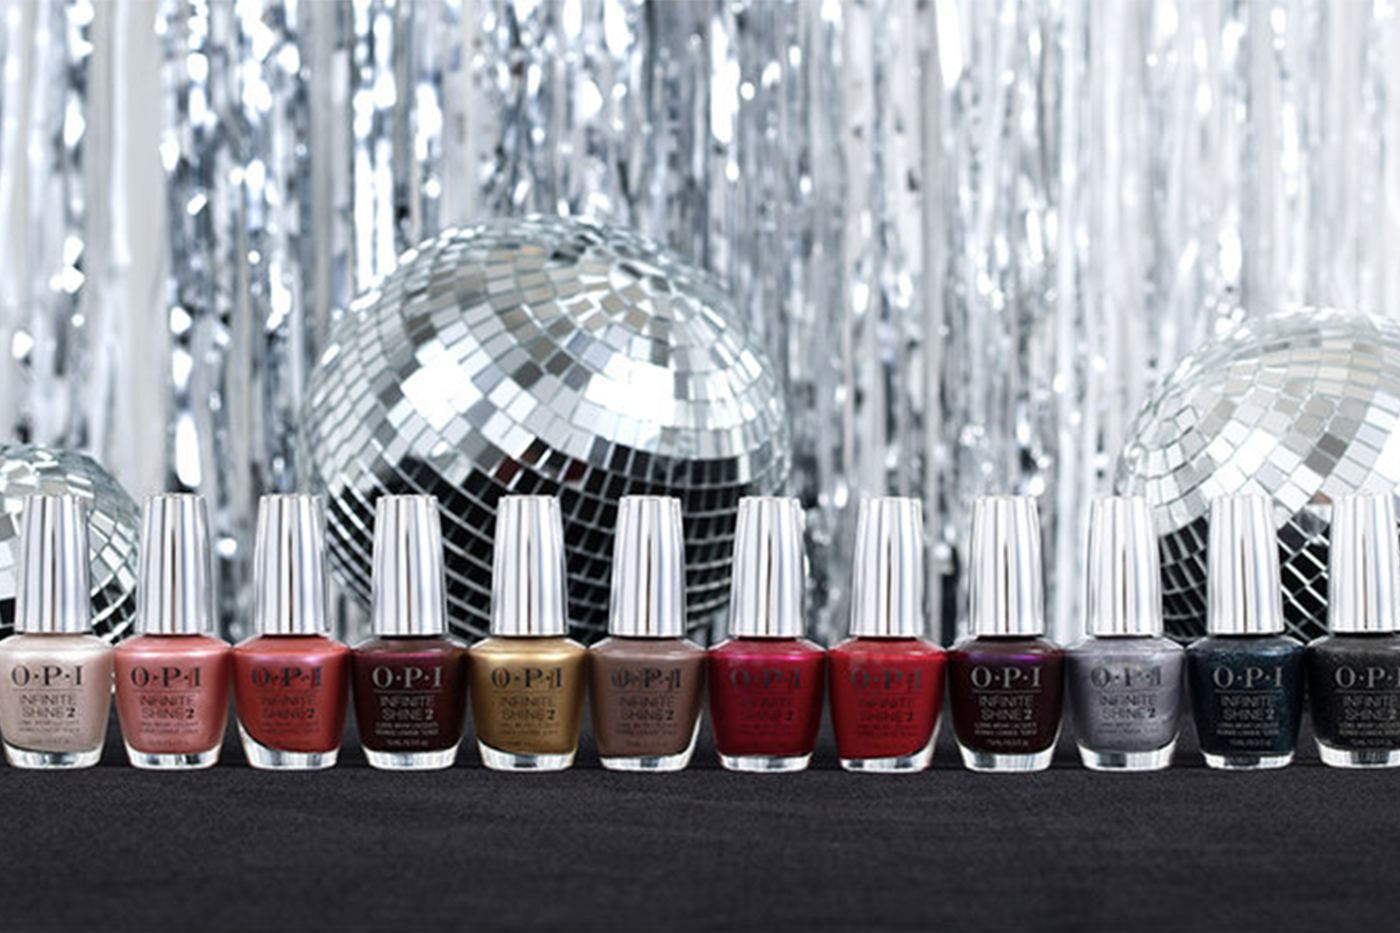 OPI's nail collection to spread shine this season